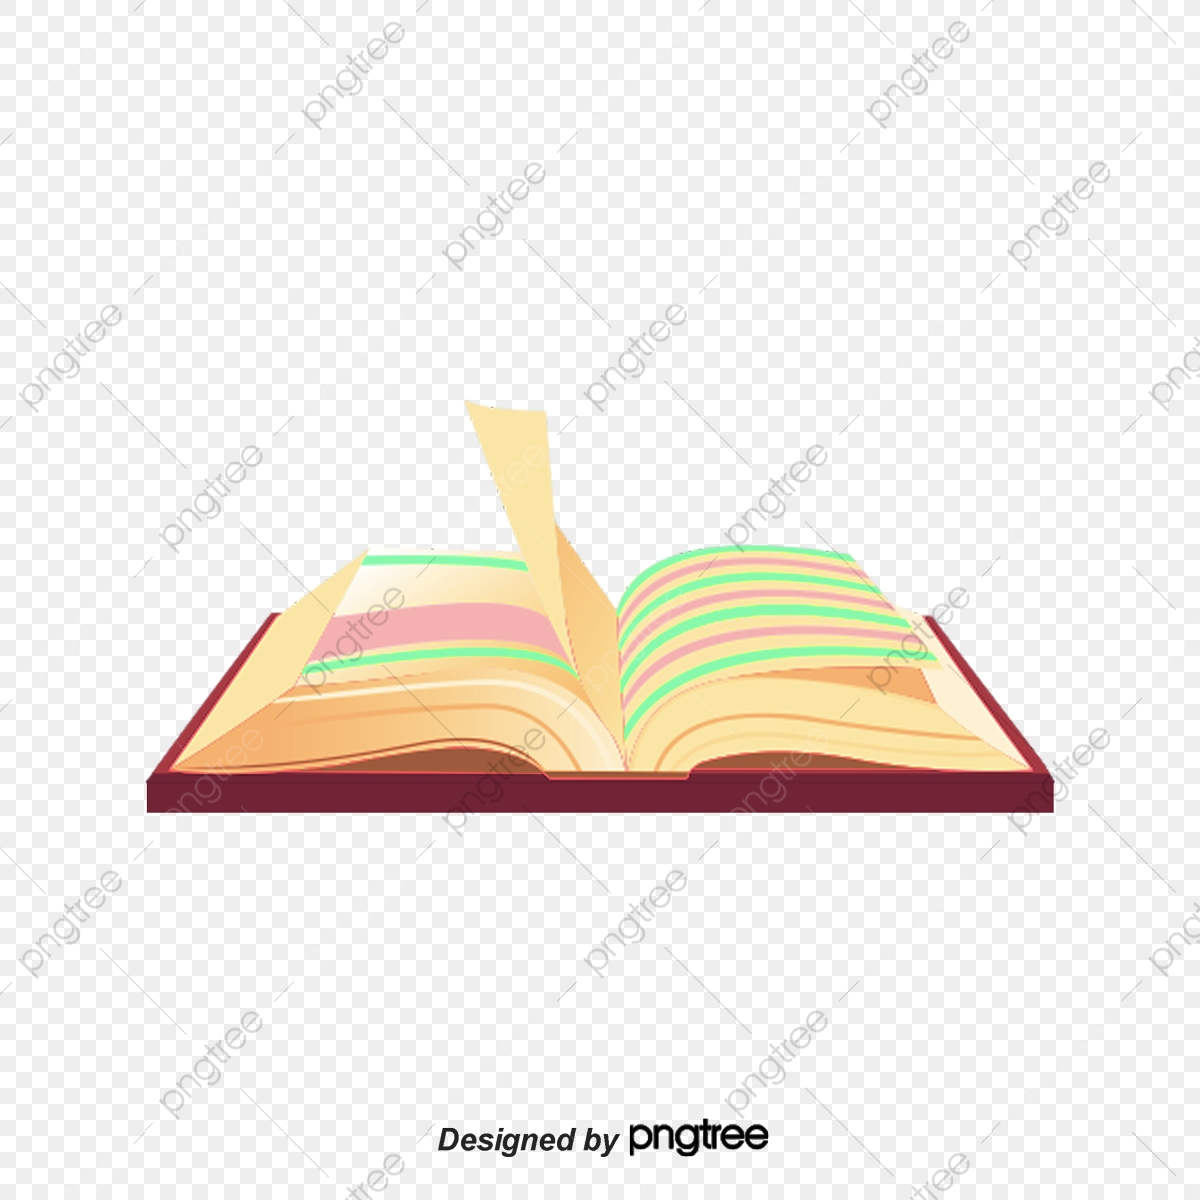 Book Clipart Download Free Transparent Png Format Clipart Images On Pngtree